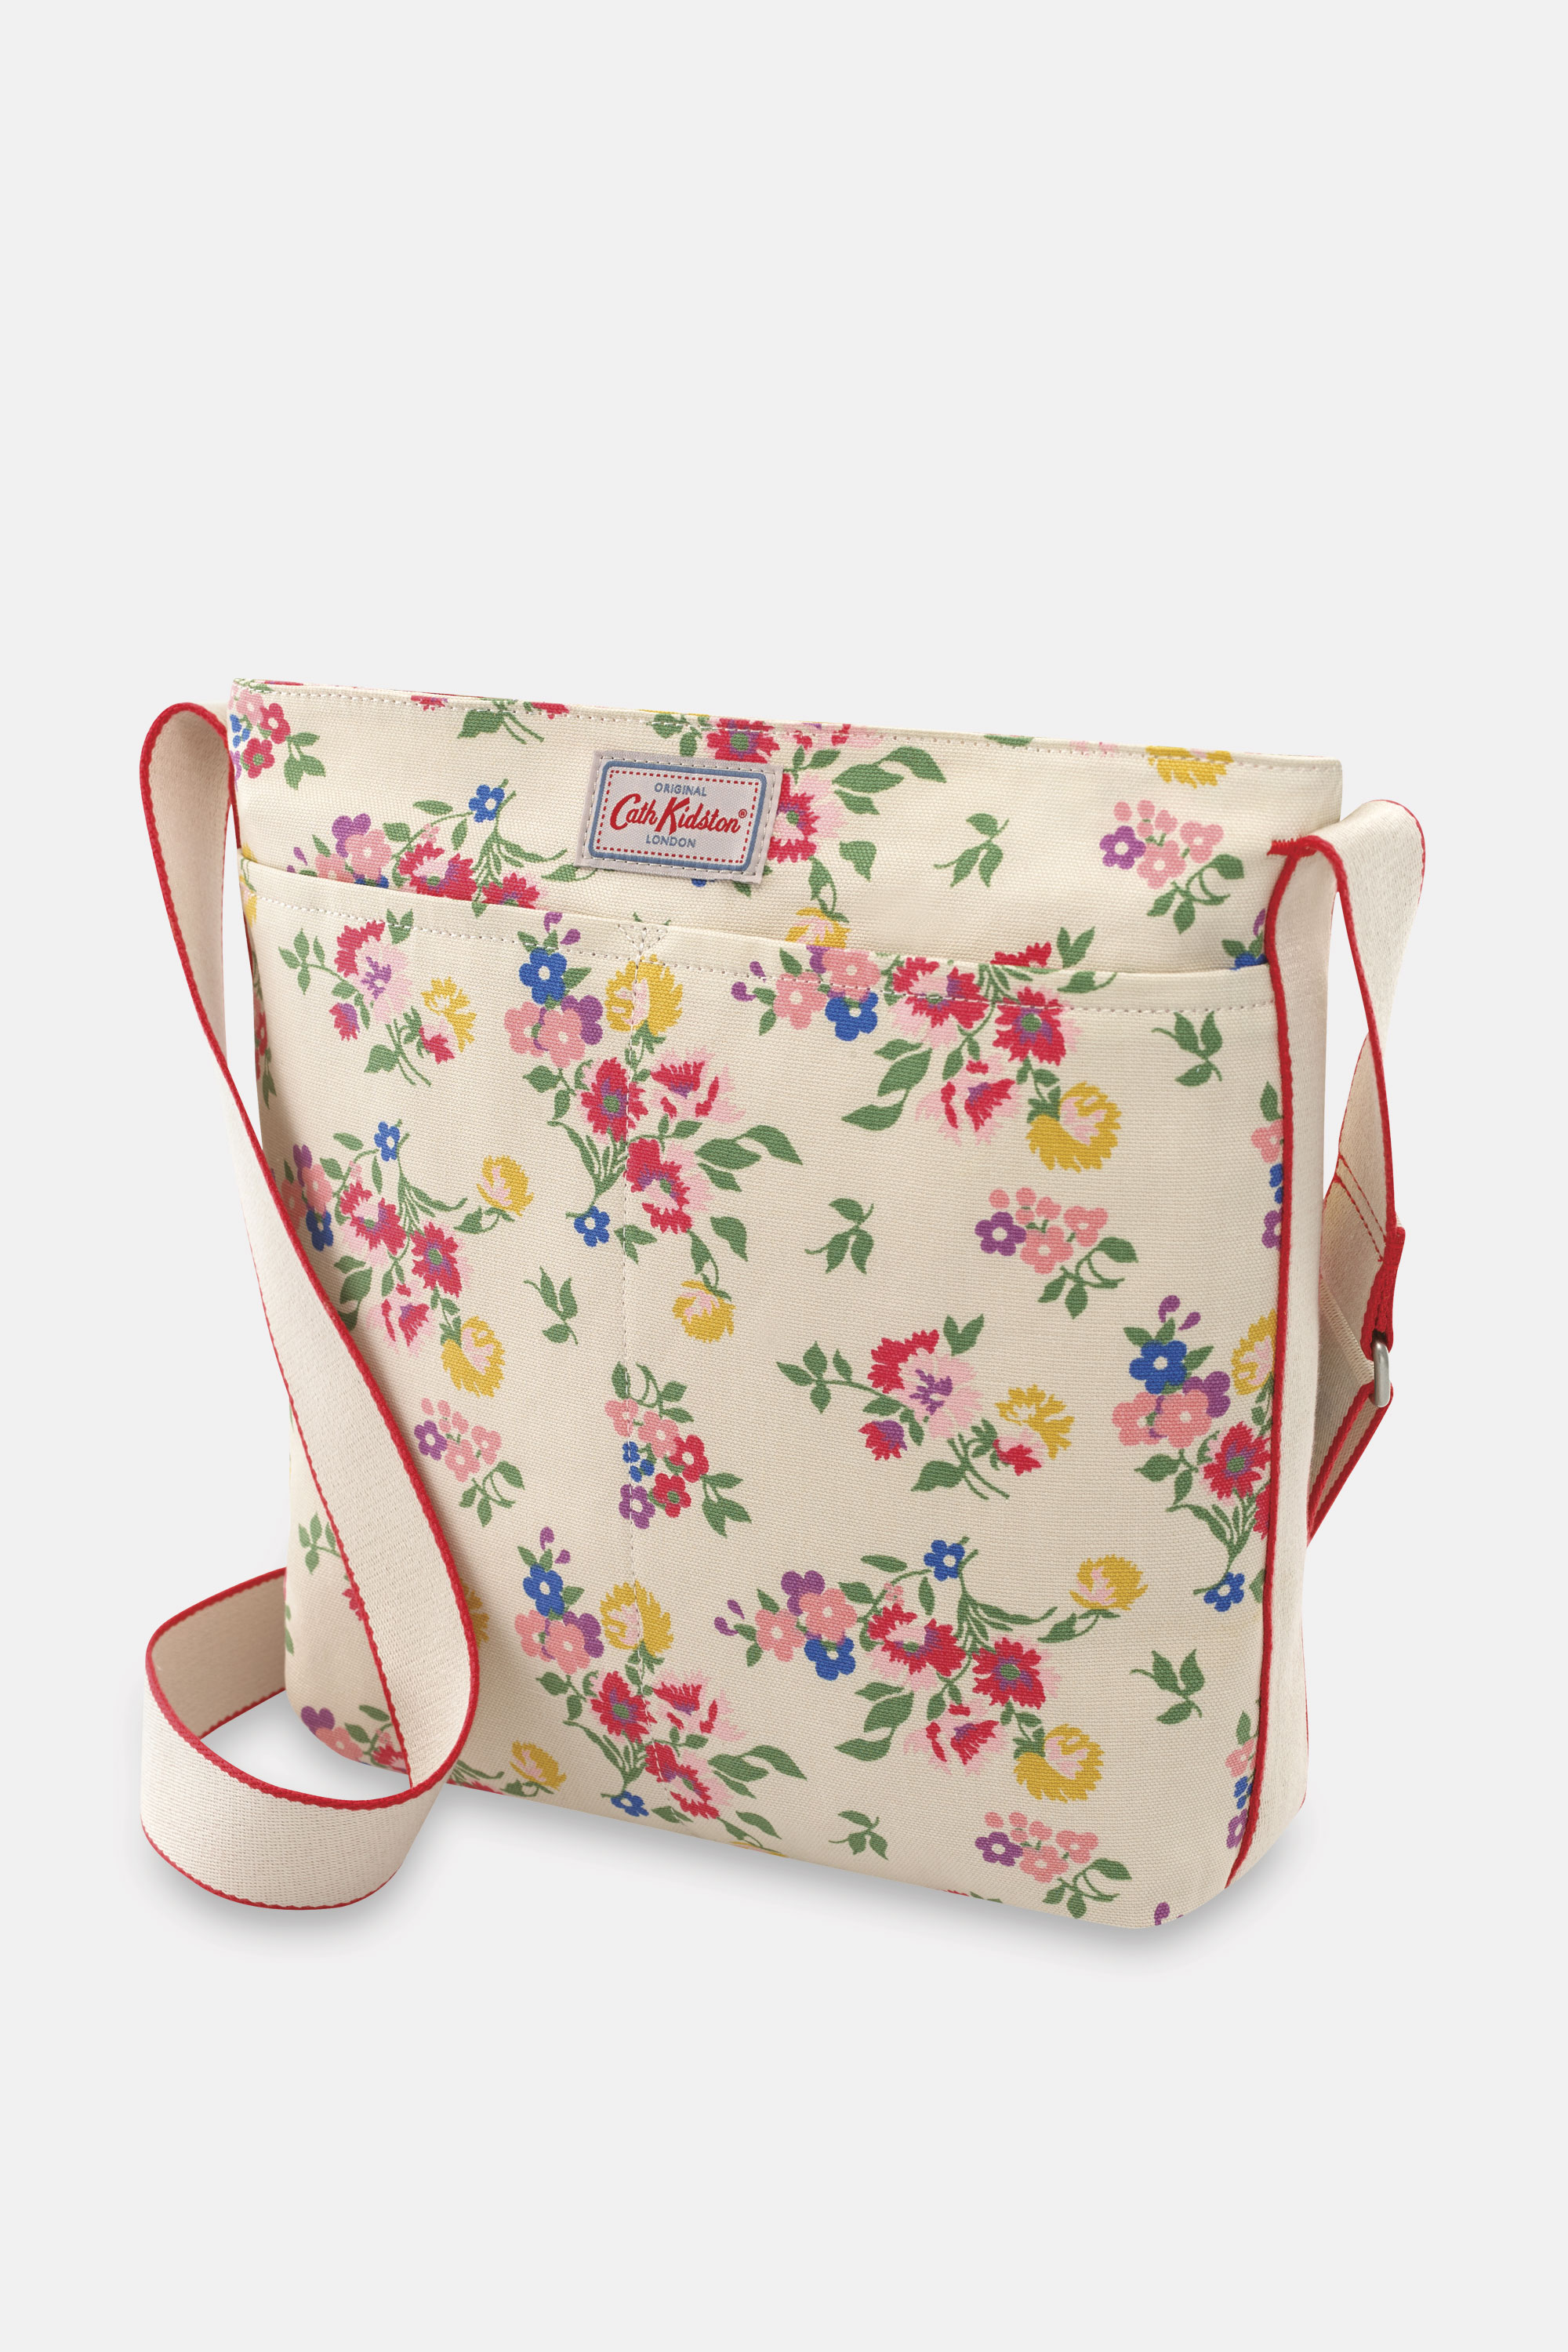 Cath Kidston Summer Floral Zip Messenger Bag in Warm Cream